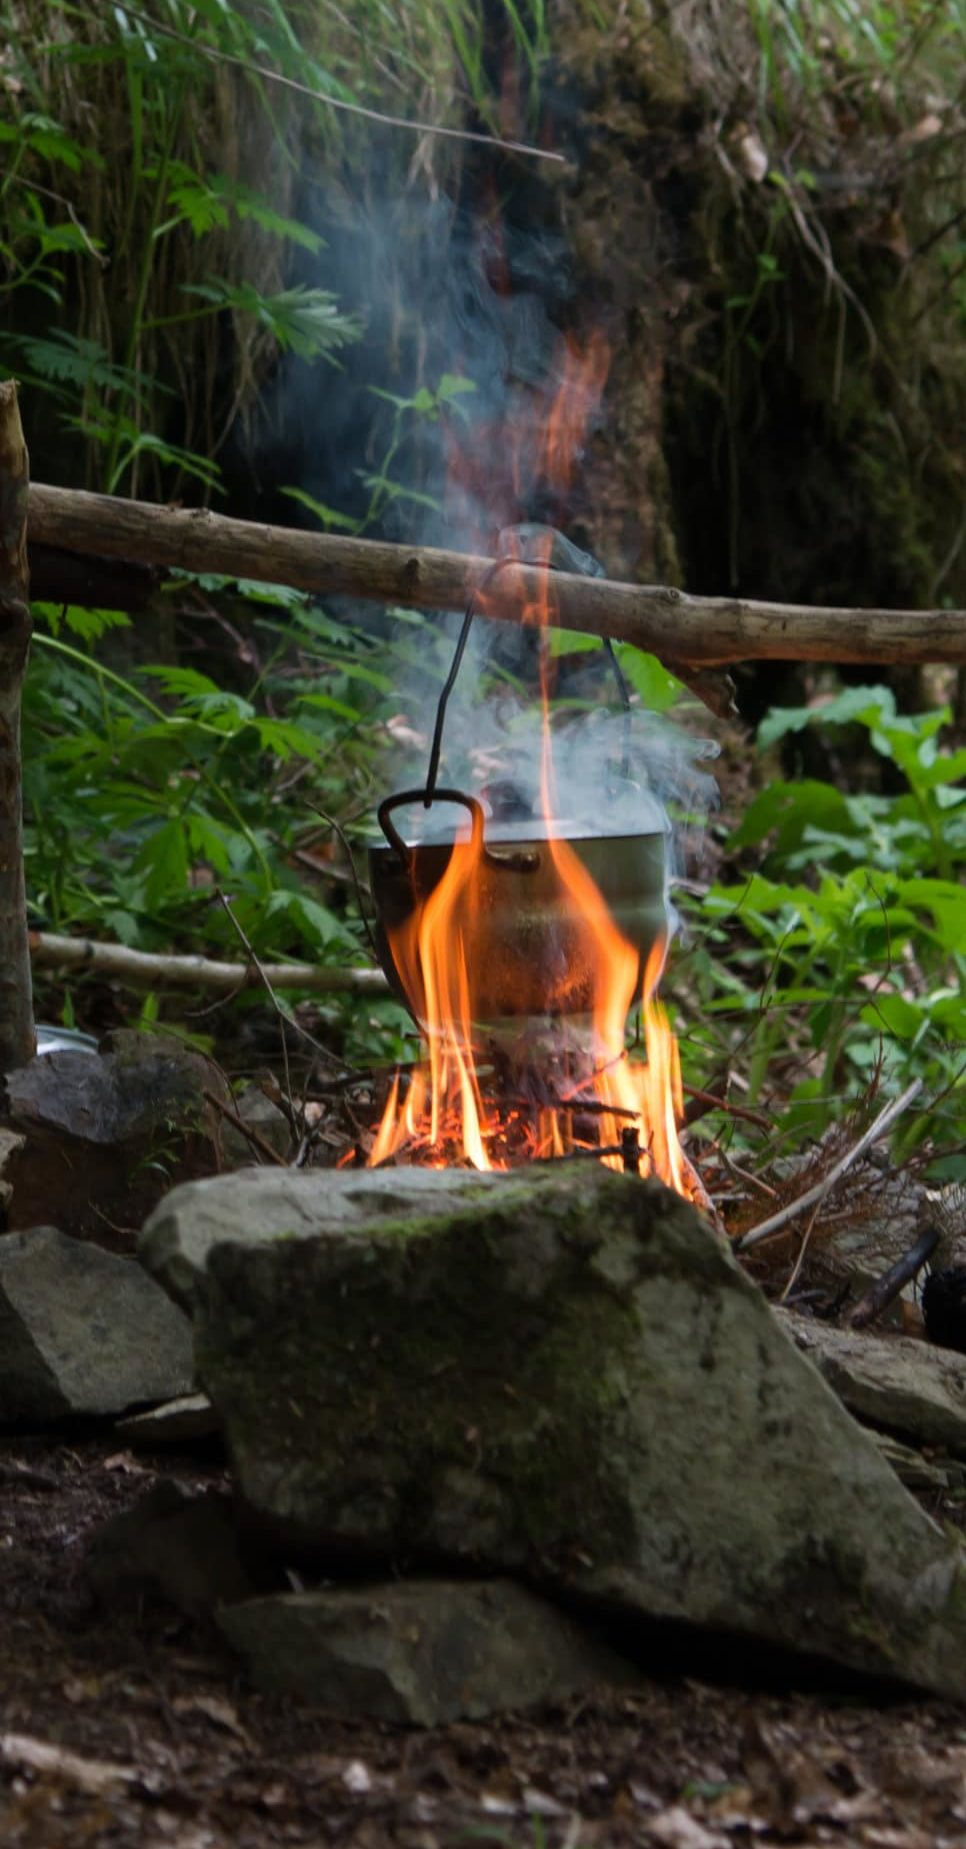 Camping kettle over burning campfire, Carpathian forest